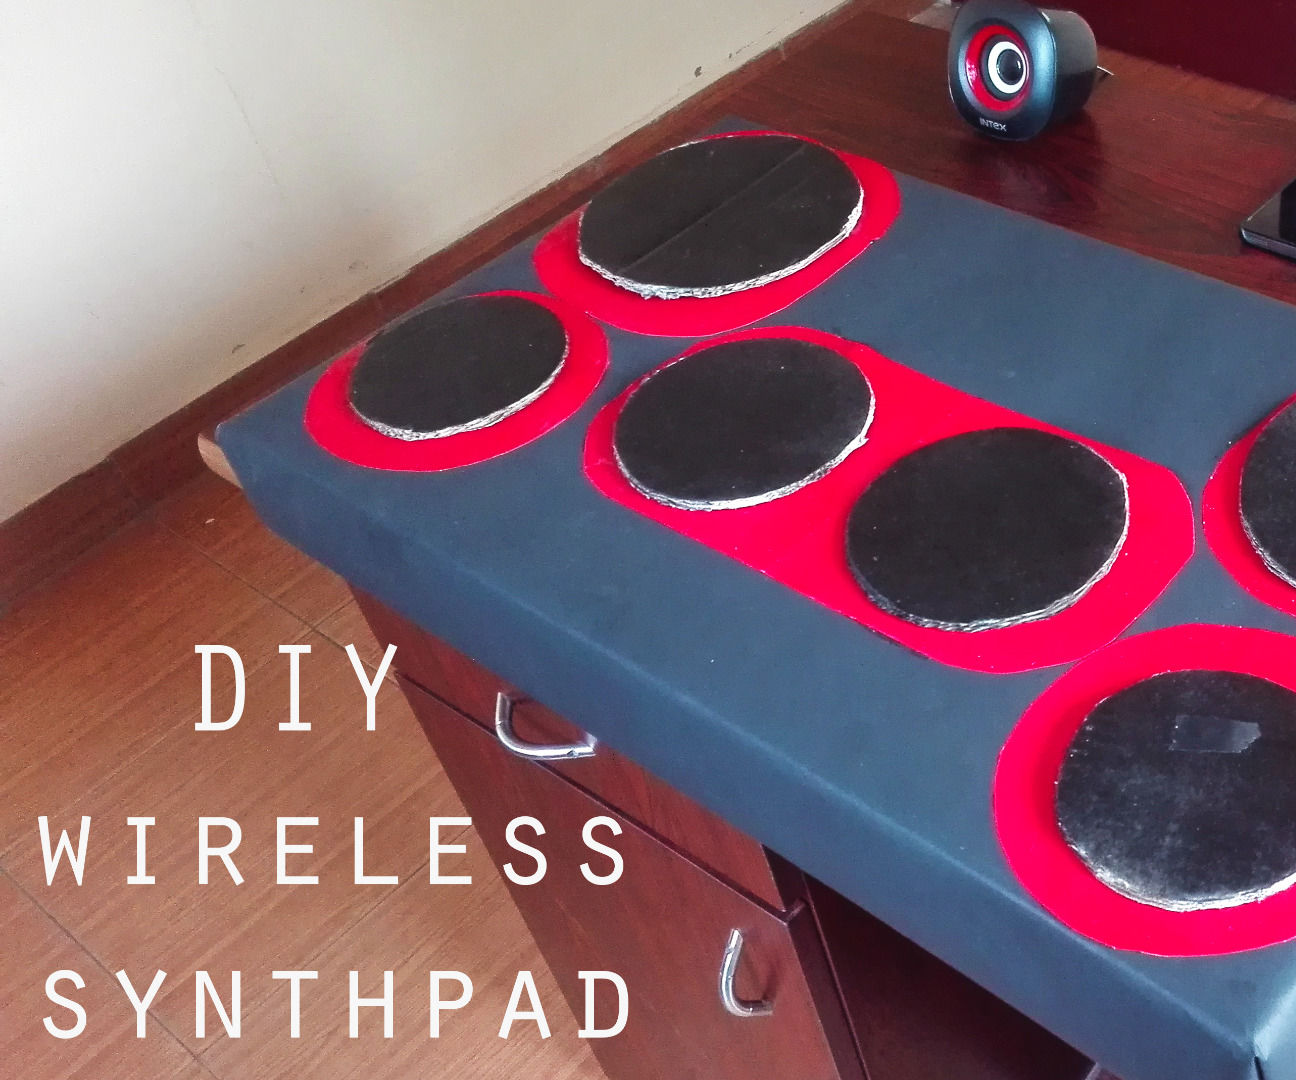 DIY bluetooth synth/drum pad with smartphone and Jetpack